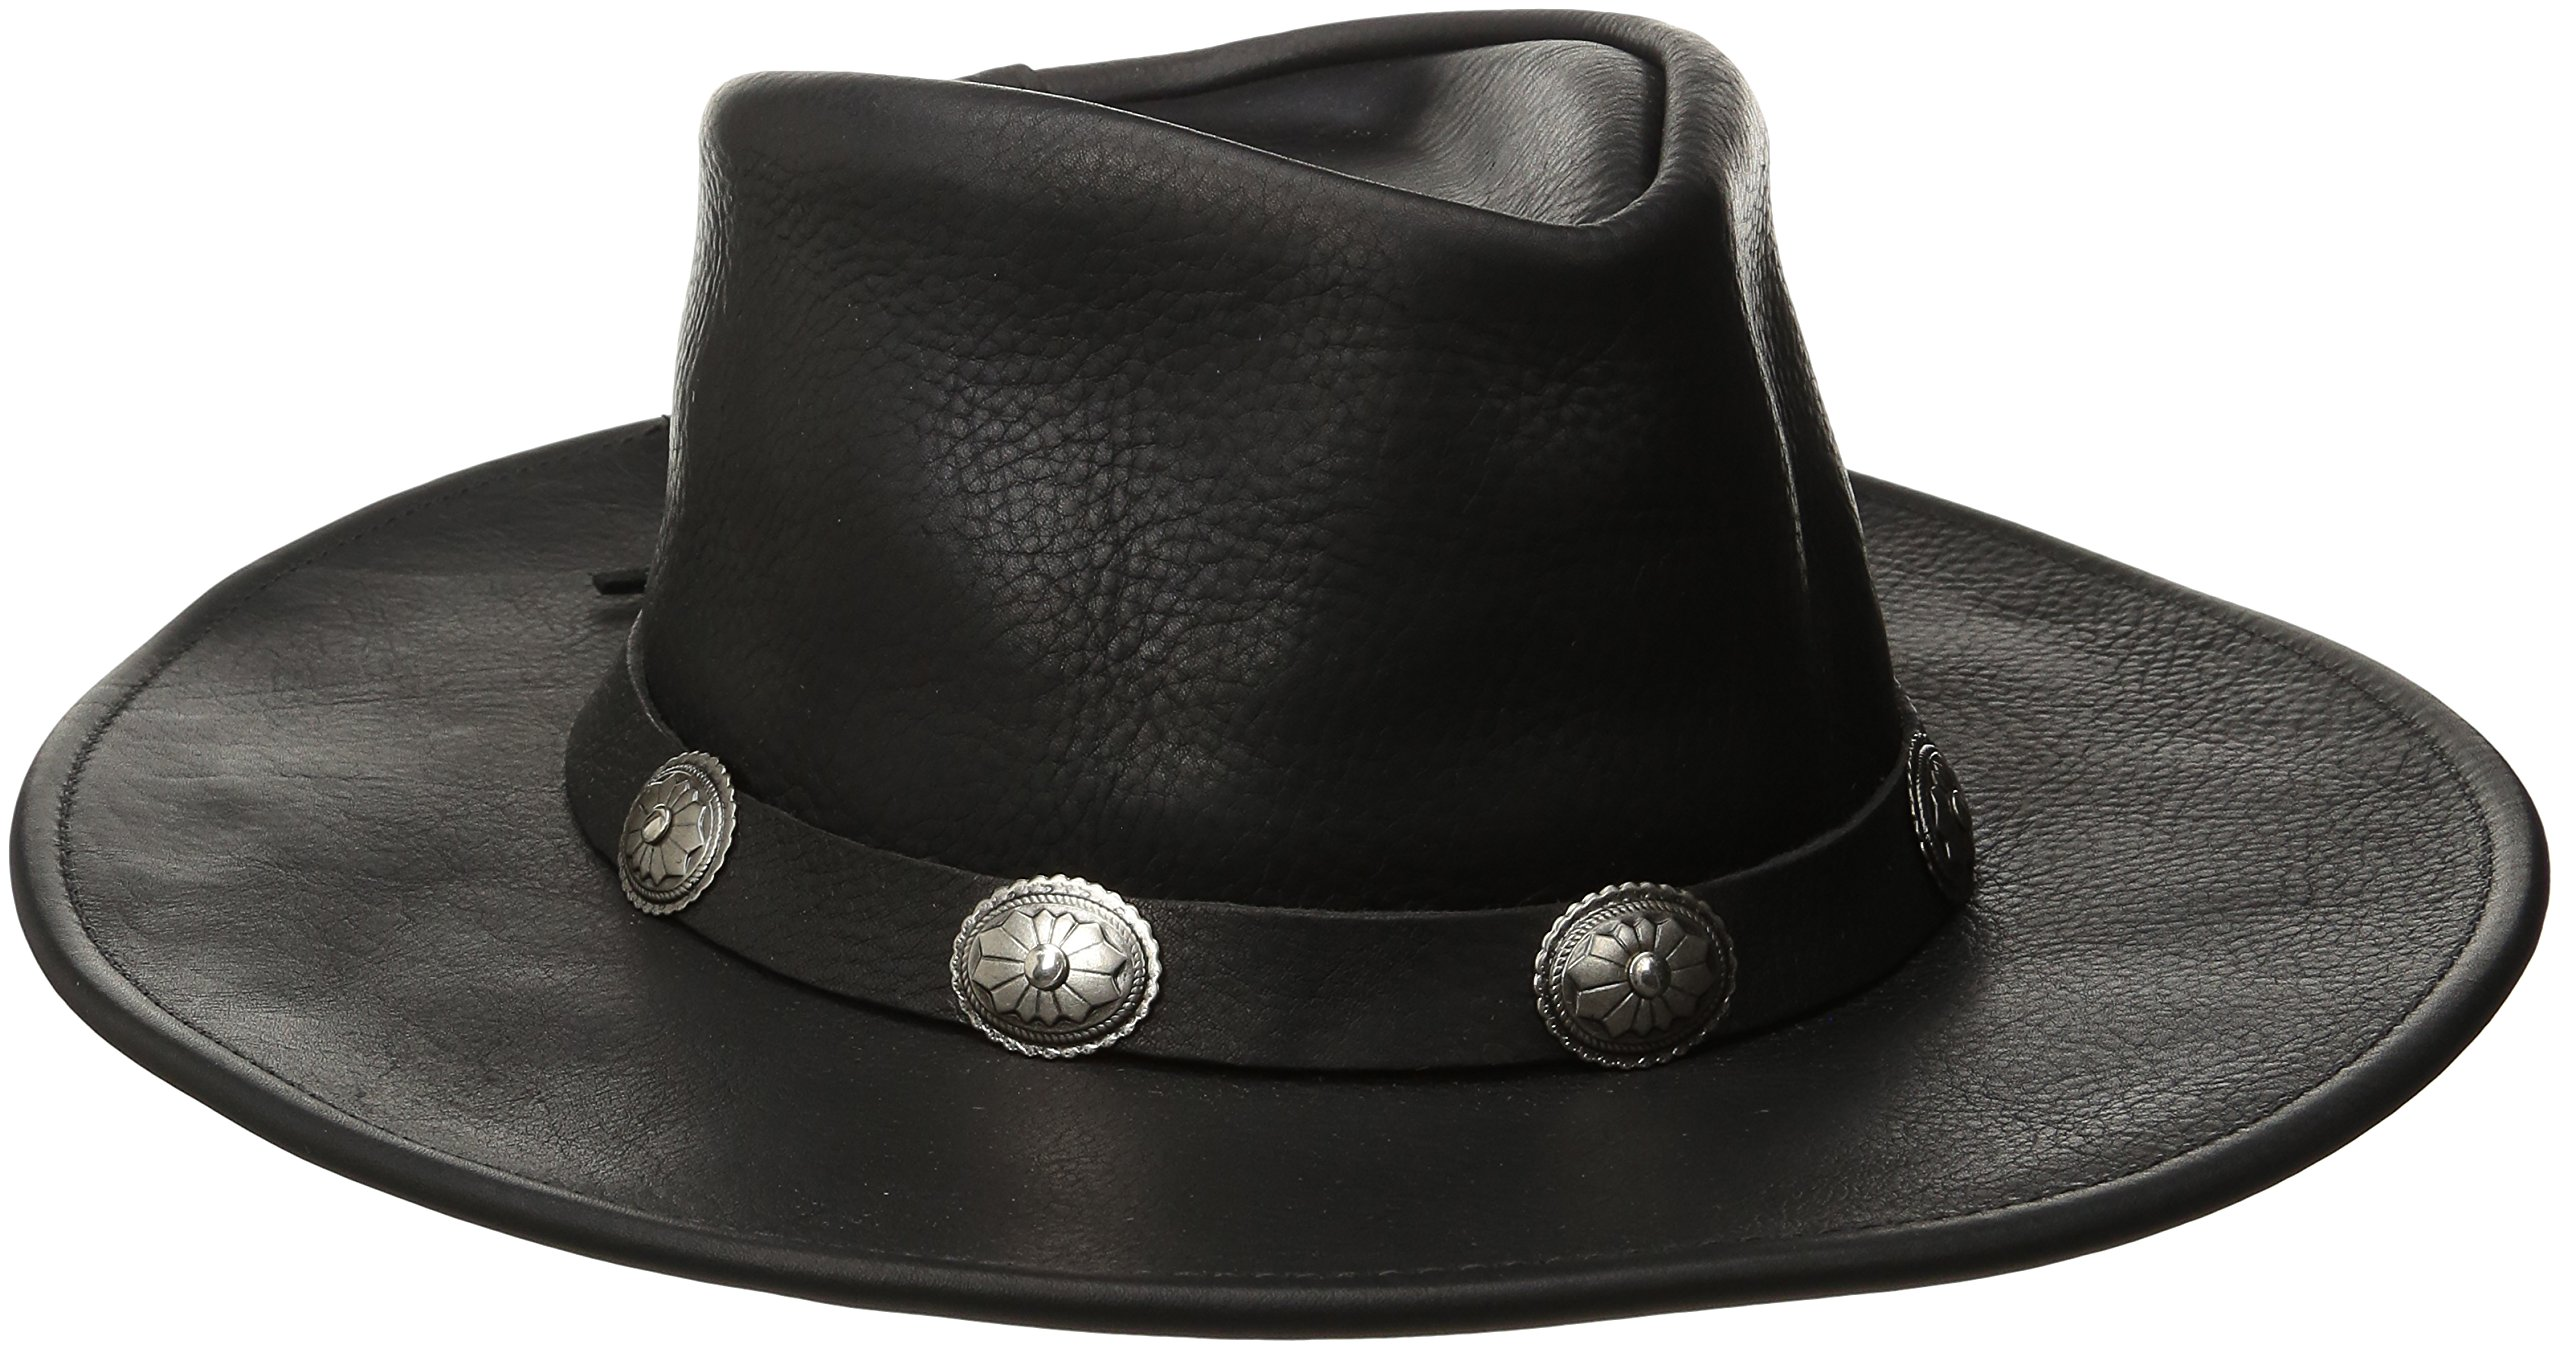 Henschel Walker, Full Grain Leather, Shapeable Brim, Conche Band, Black, Small by Henschel